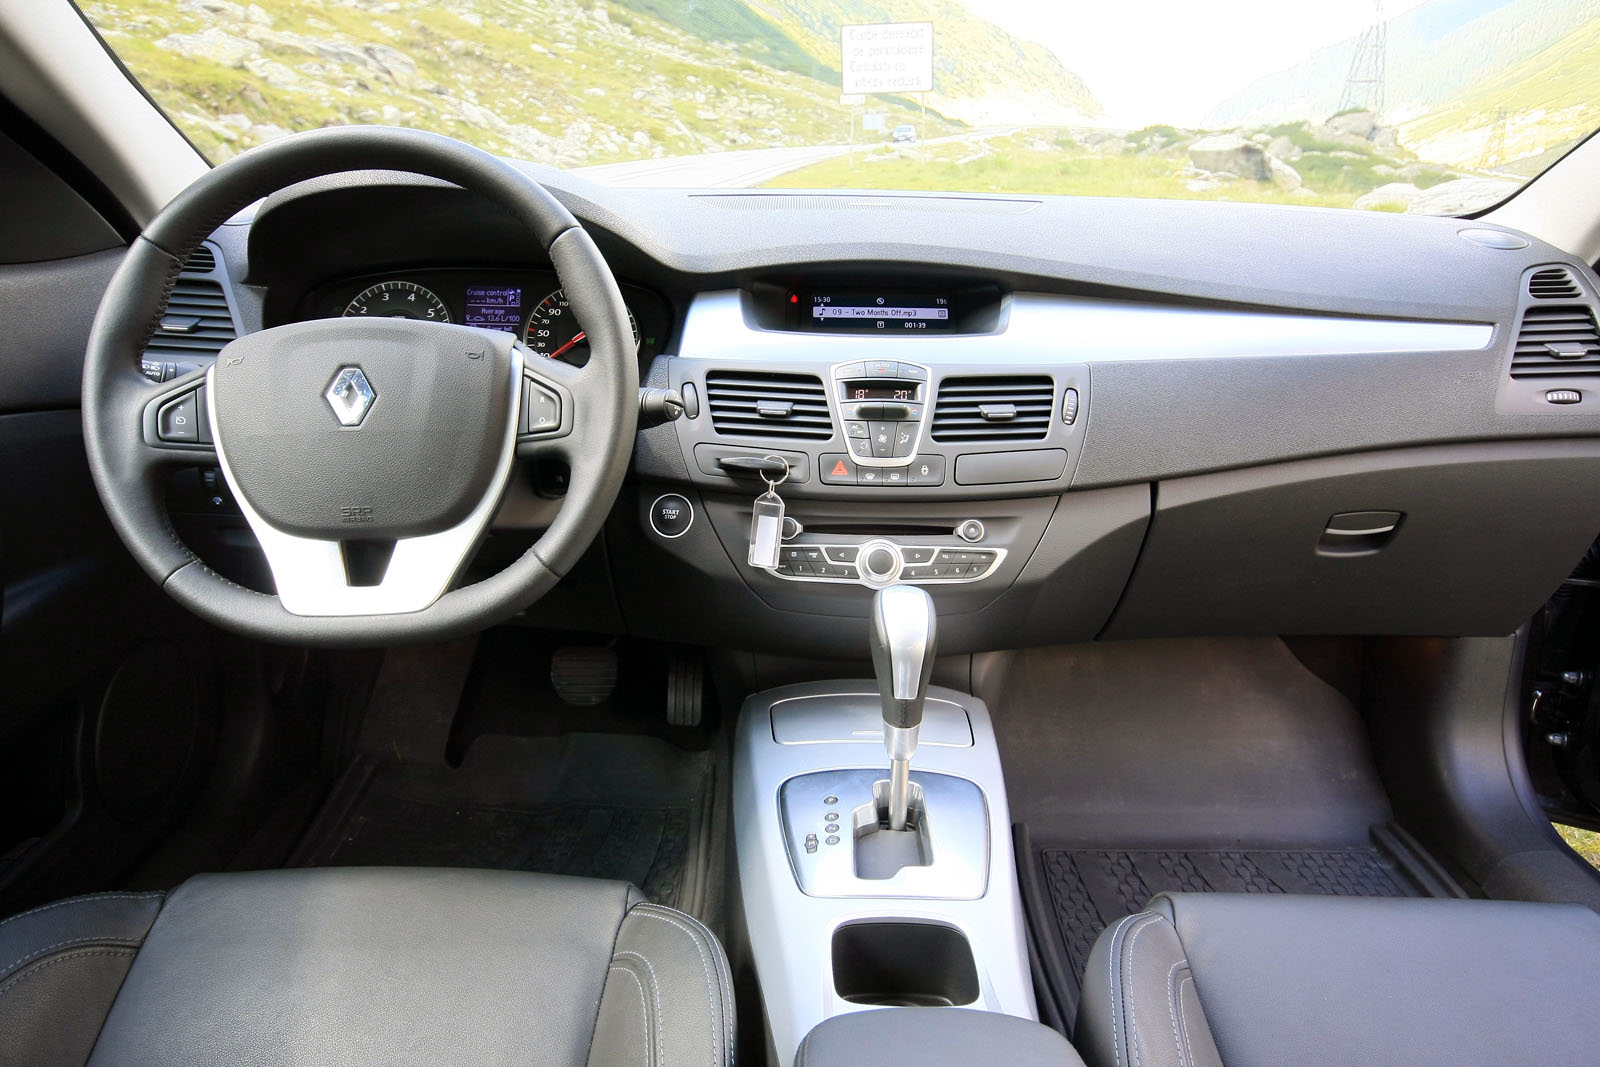 renault laguna coup daciaclub forum dacia. Black Bedroom Furniture Sets. Home Design Ideas